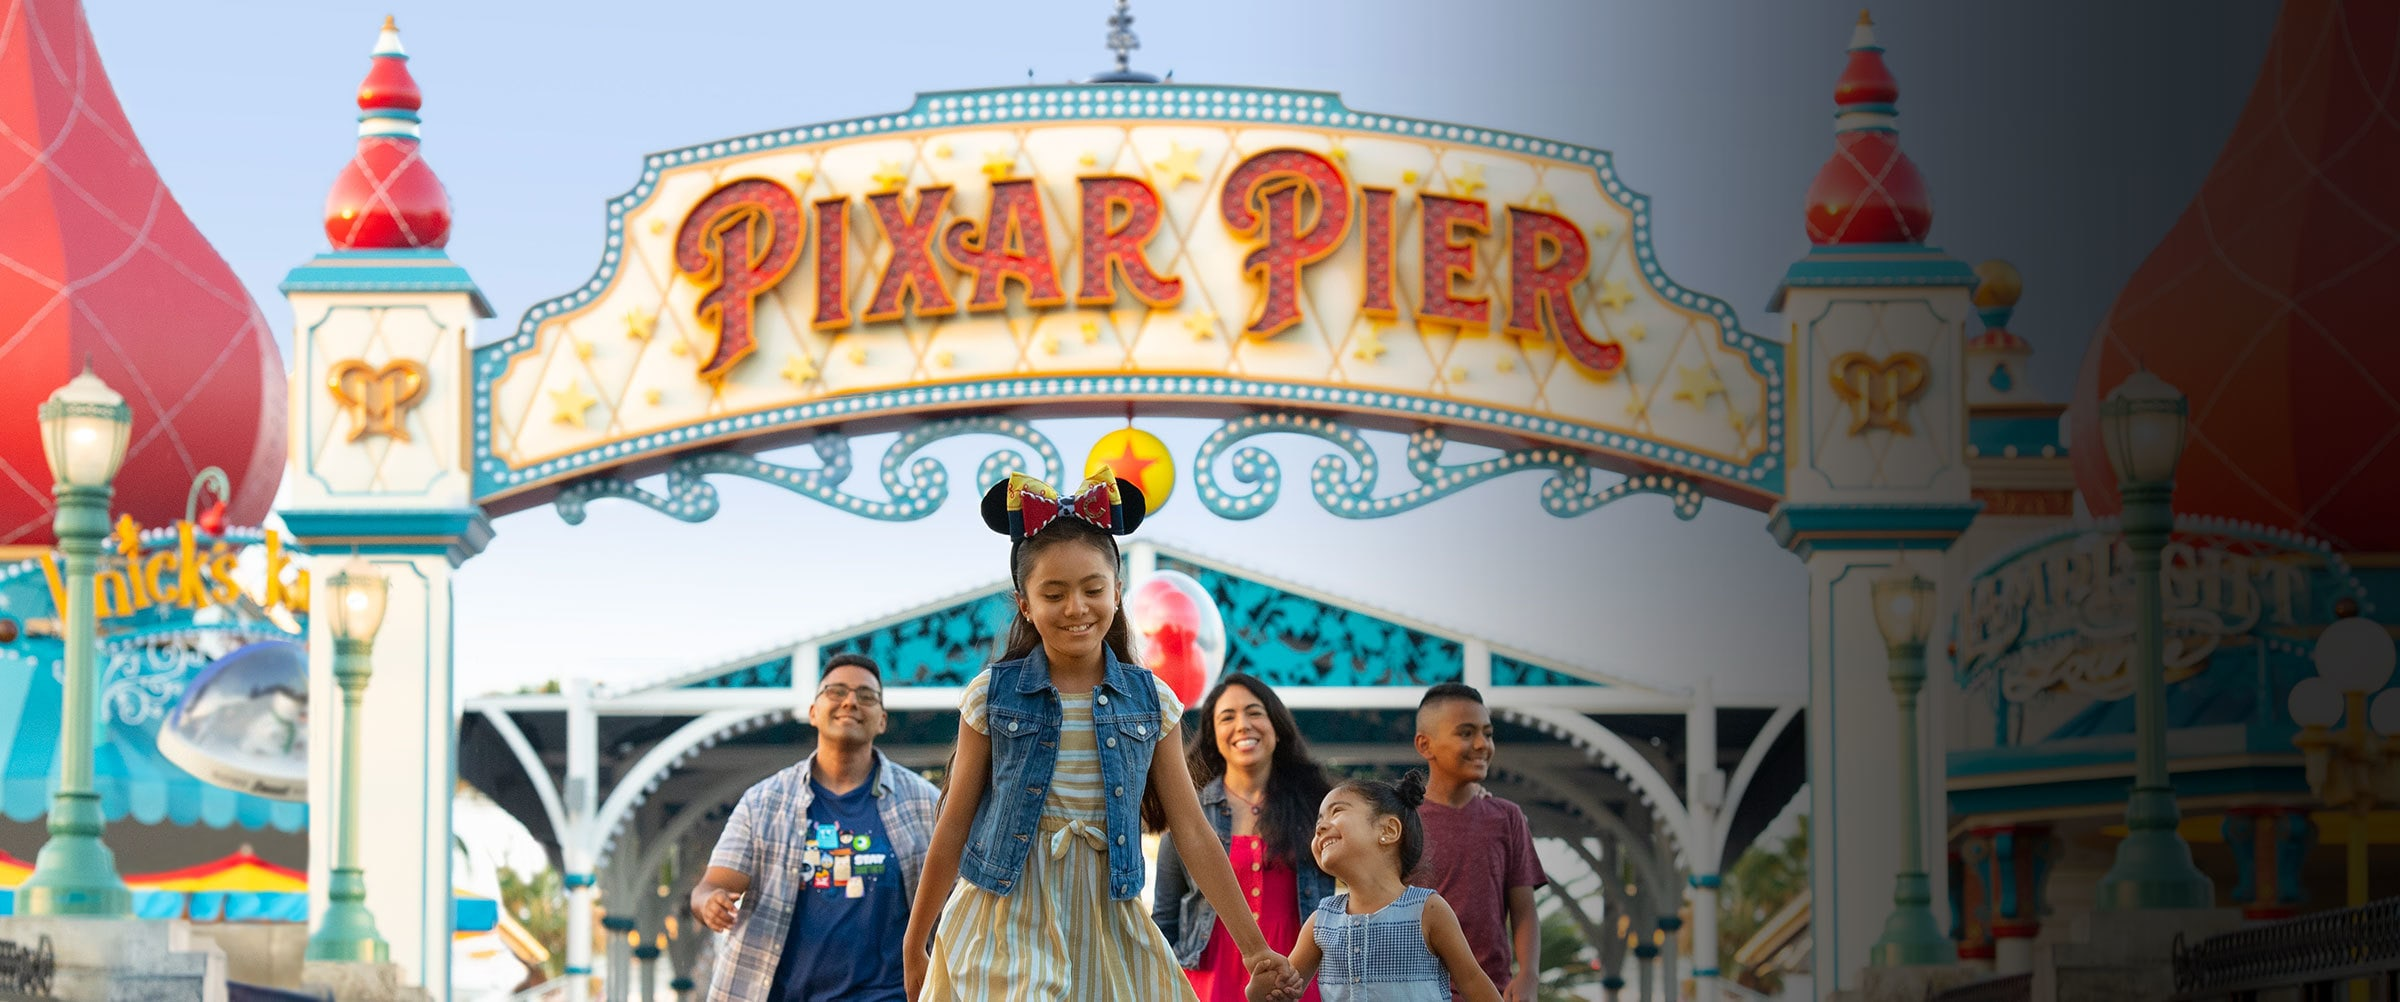 Disney Parks - California Adventure Pixar Pier - Homepage banner